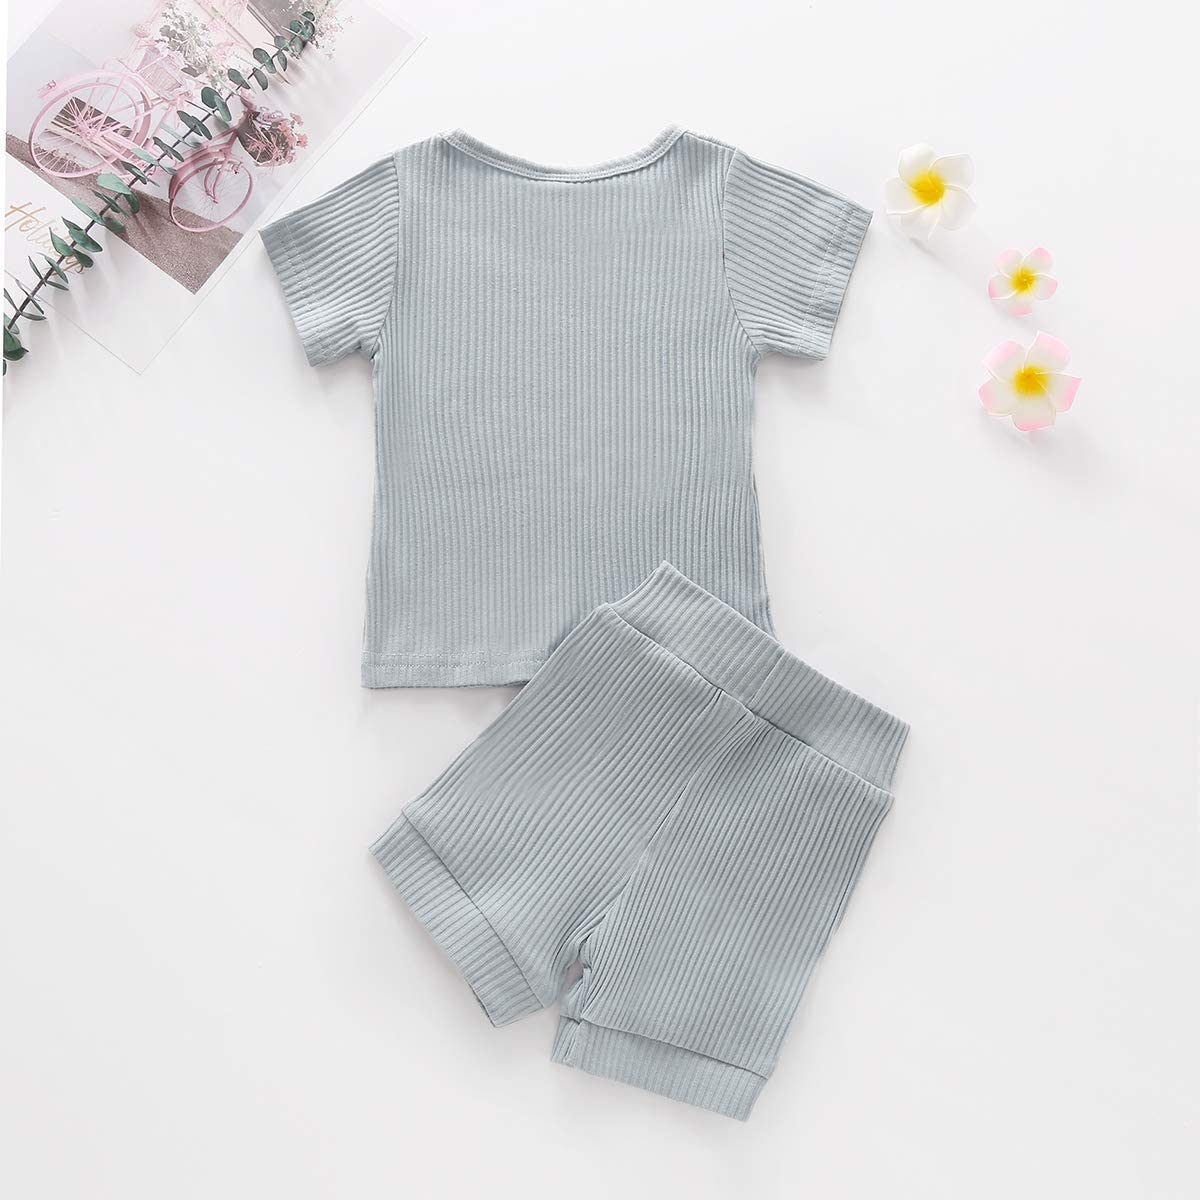 YOUNGER STAR Toddler Baby Boys Girls Cotton Line Clothes Tee and Pants 2Pcs Pajama Set Solid Color Outfit